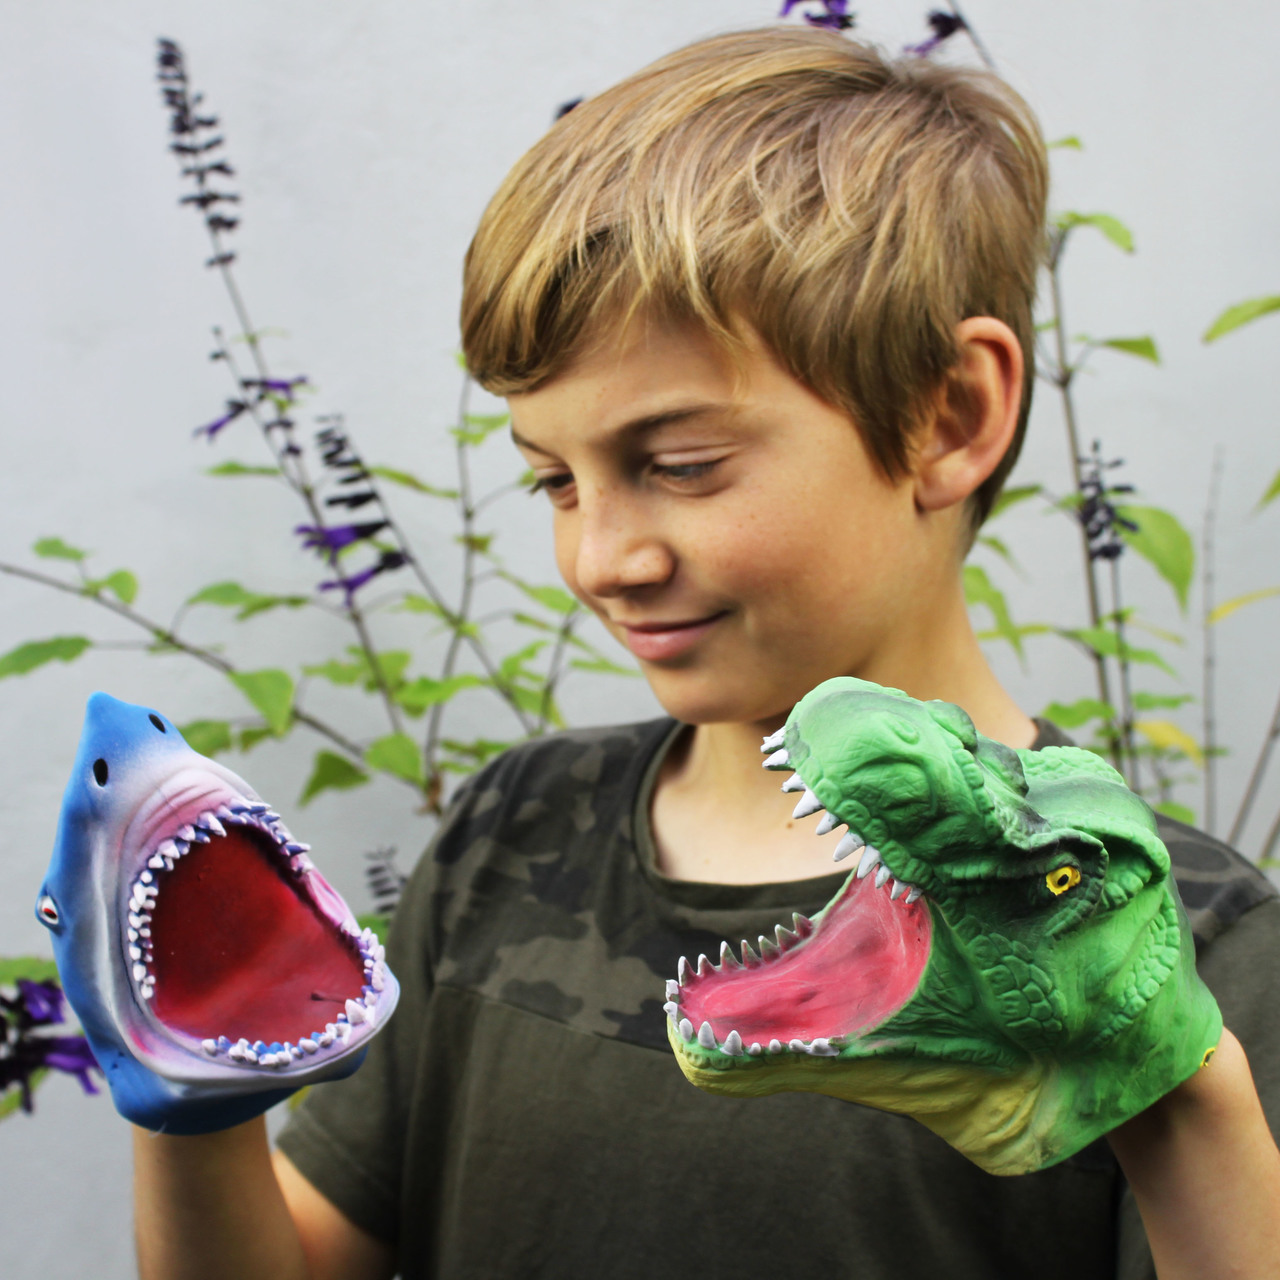 zach-with-hand-puppets-25090.1511526629.1280.1280.jpg